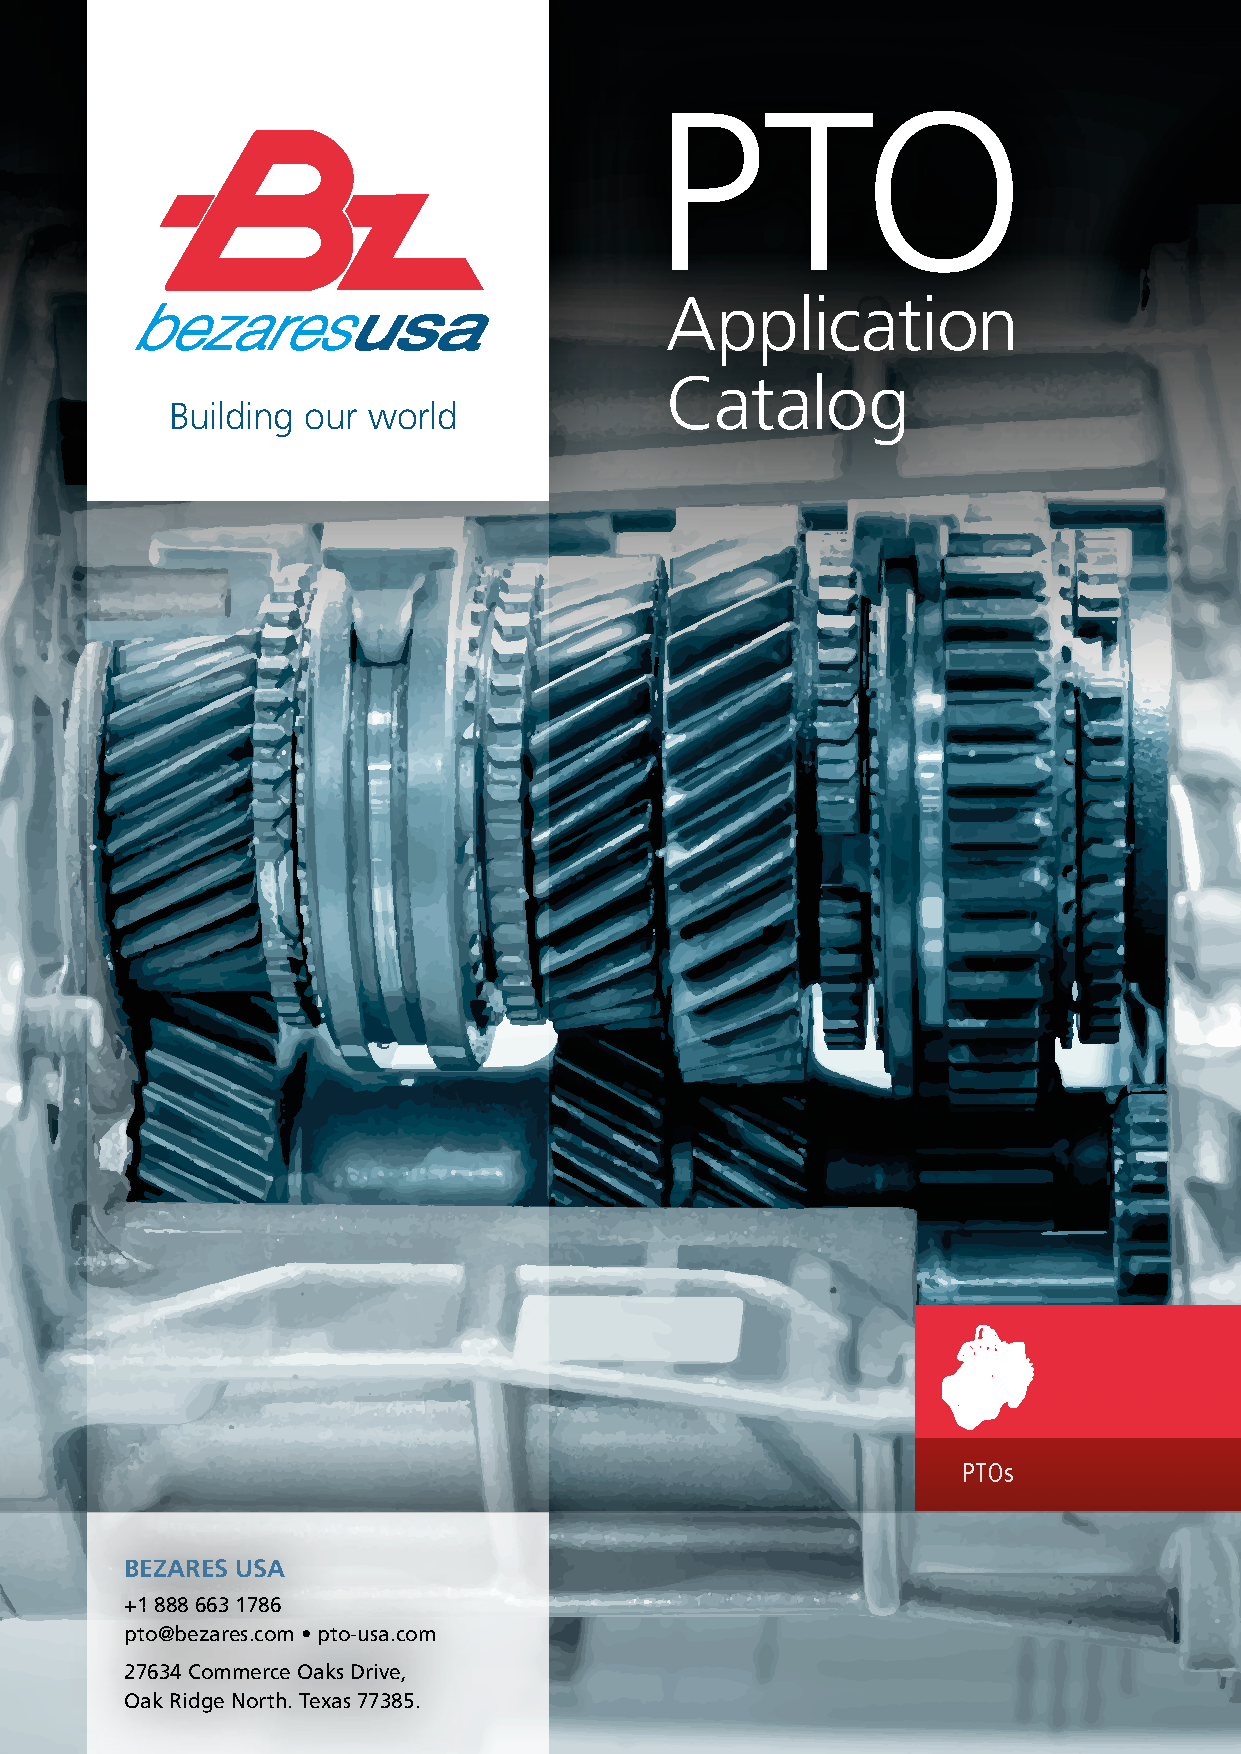 PTO Application Catalog - Bezares USA (North America)